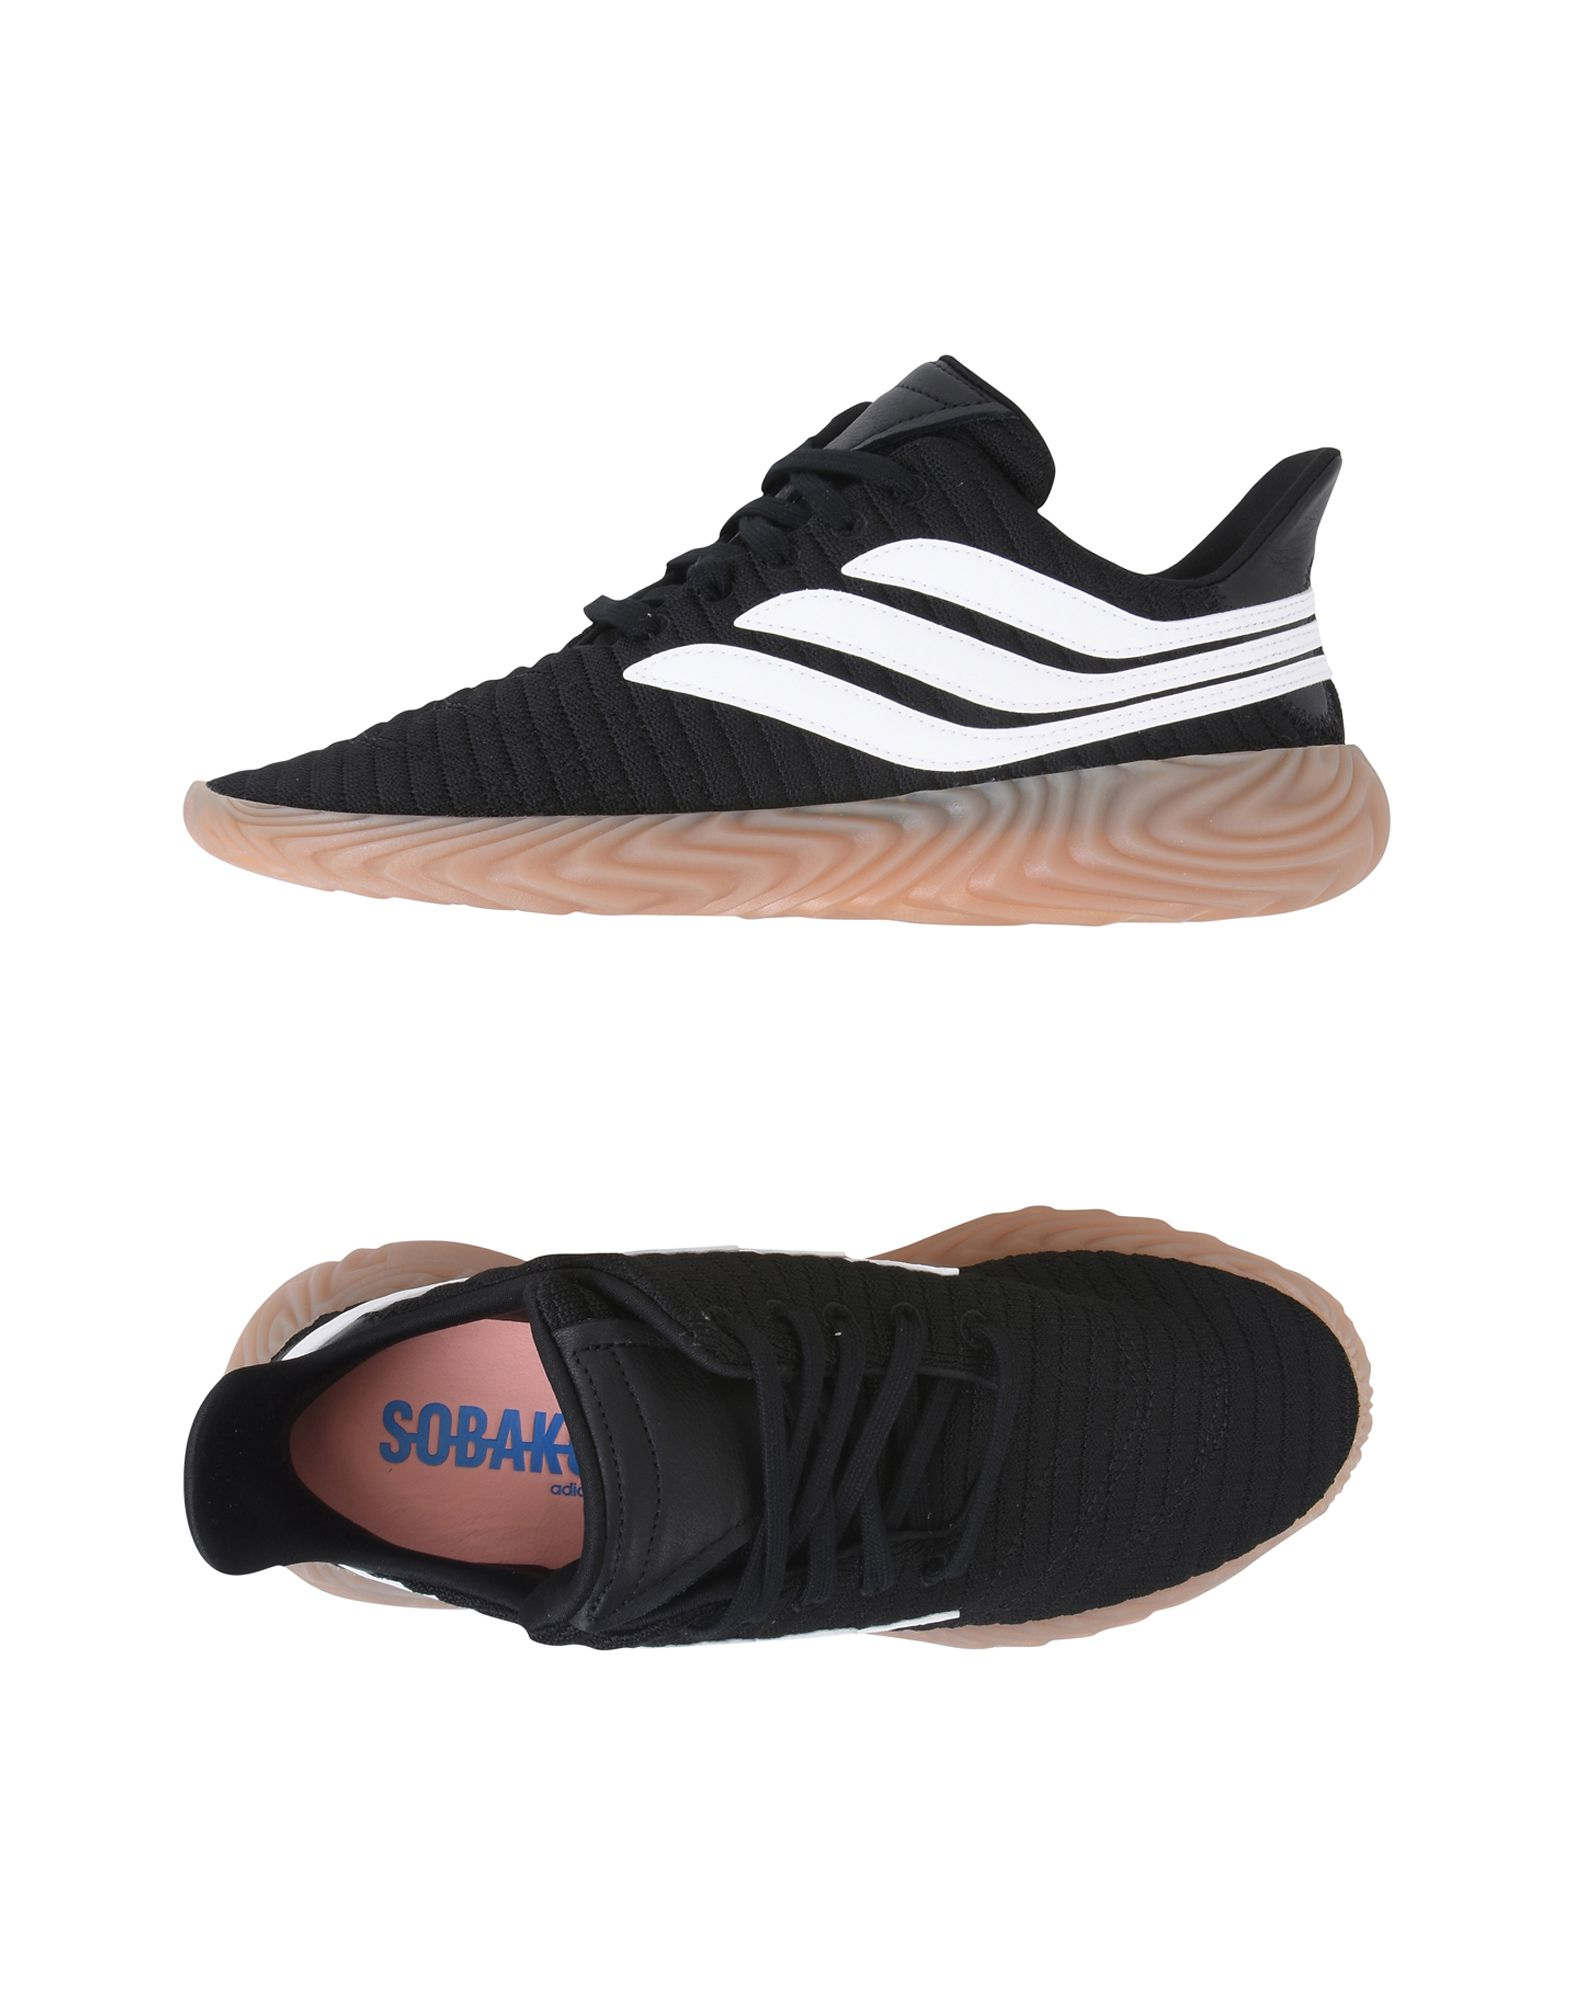 Turnscarpe Adidas Originals Sobakov - - - uomo - 11535330NS 561